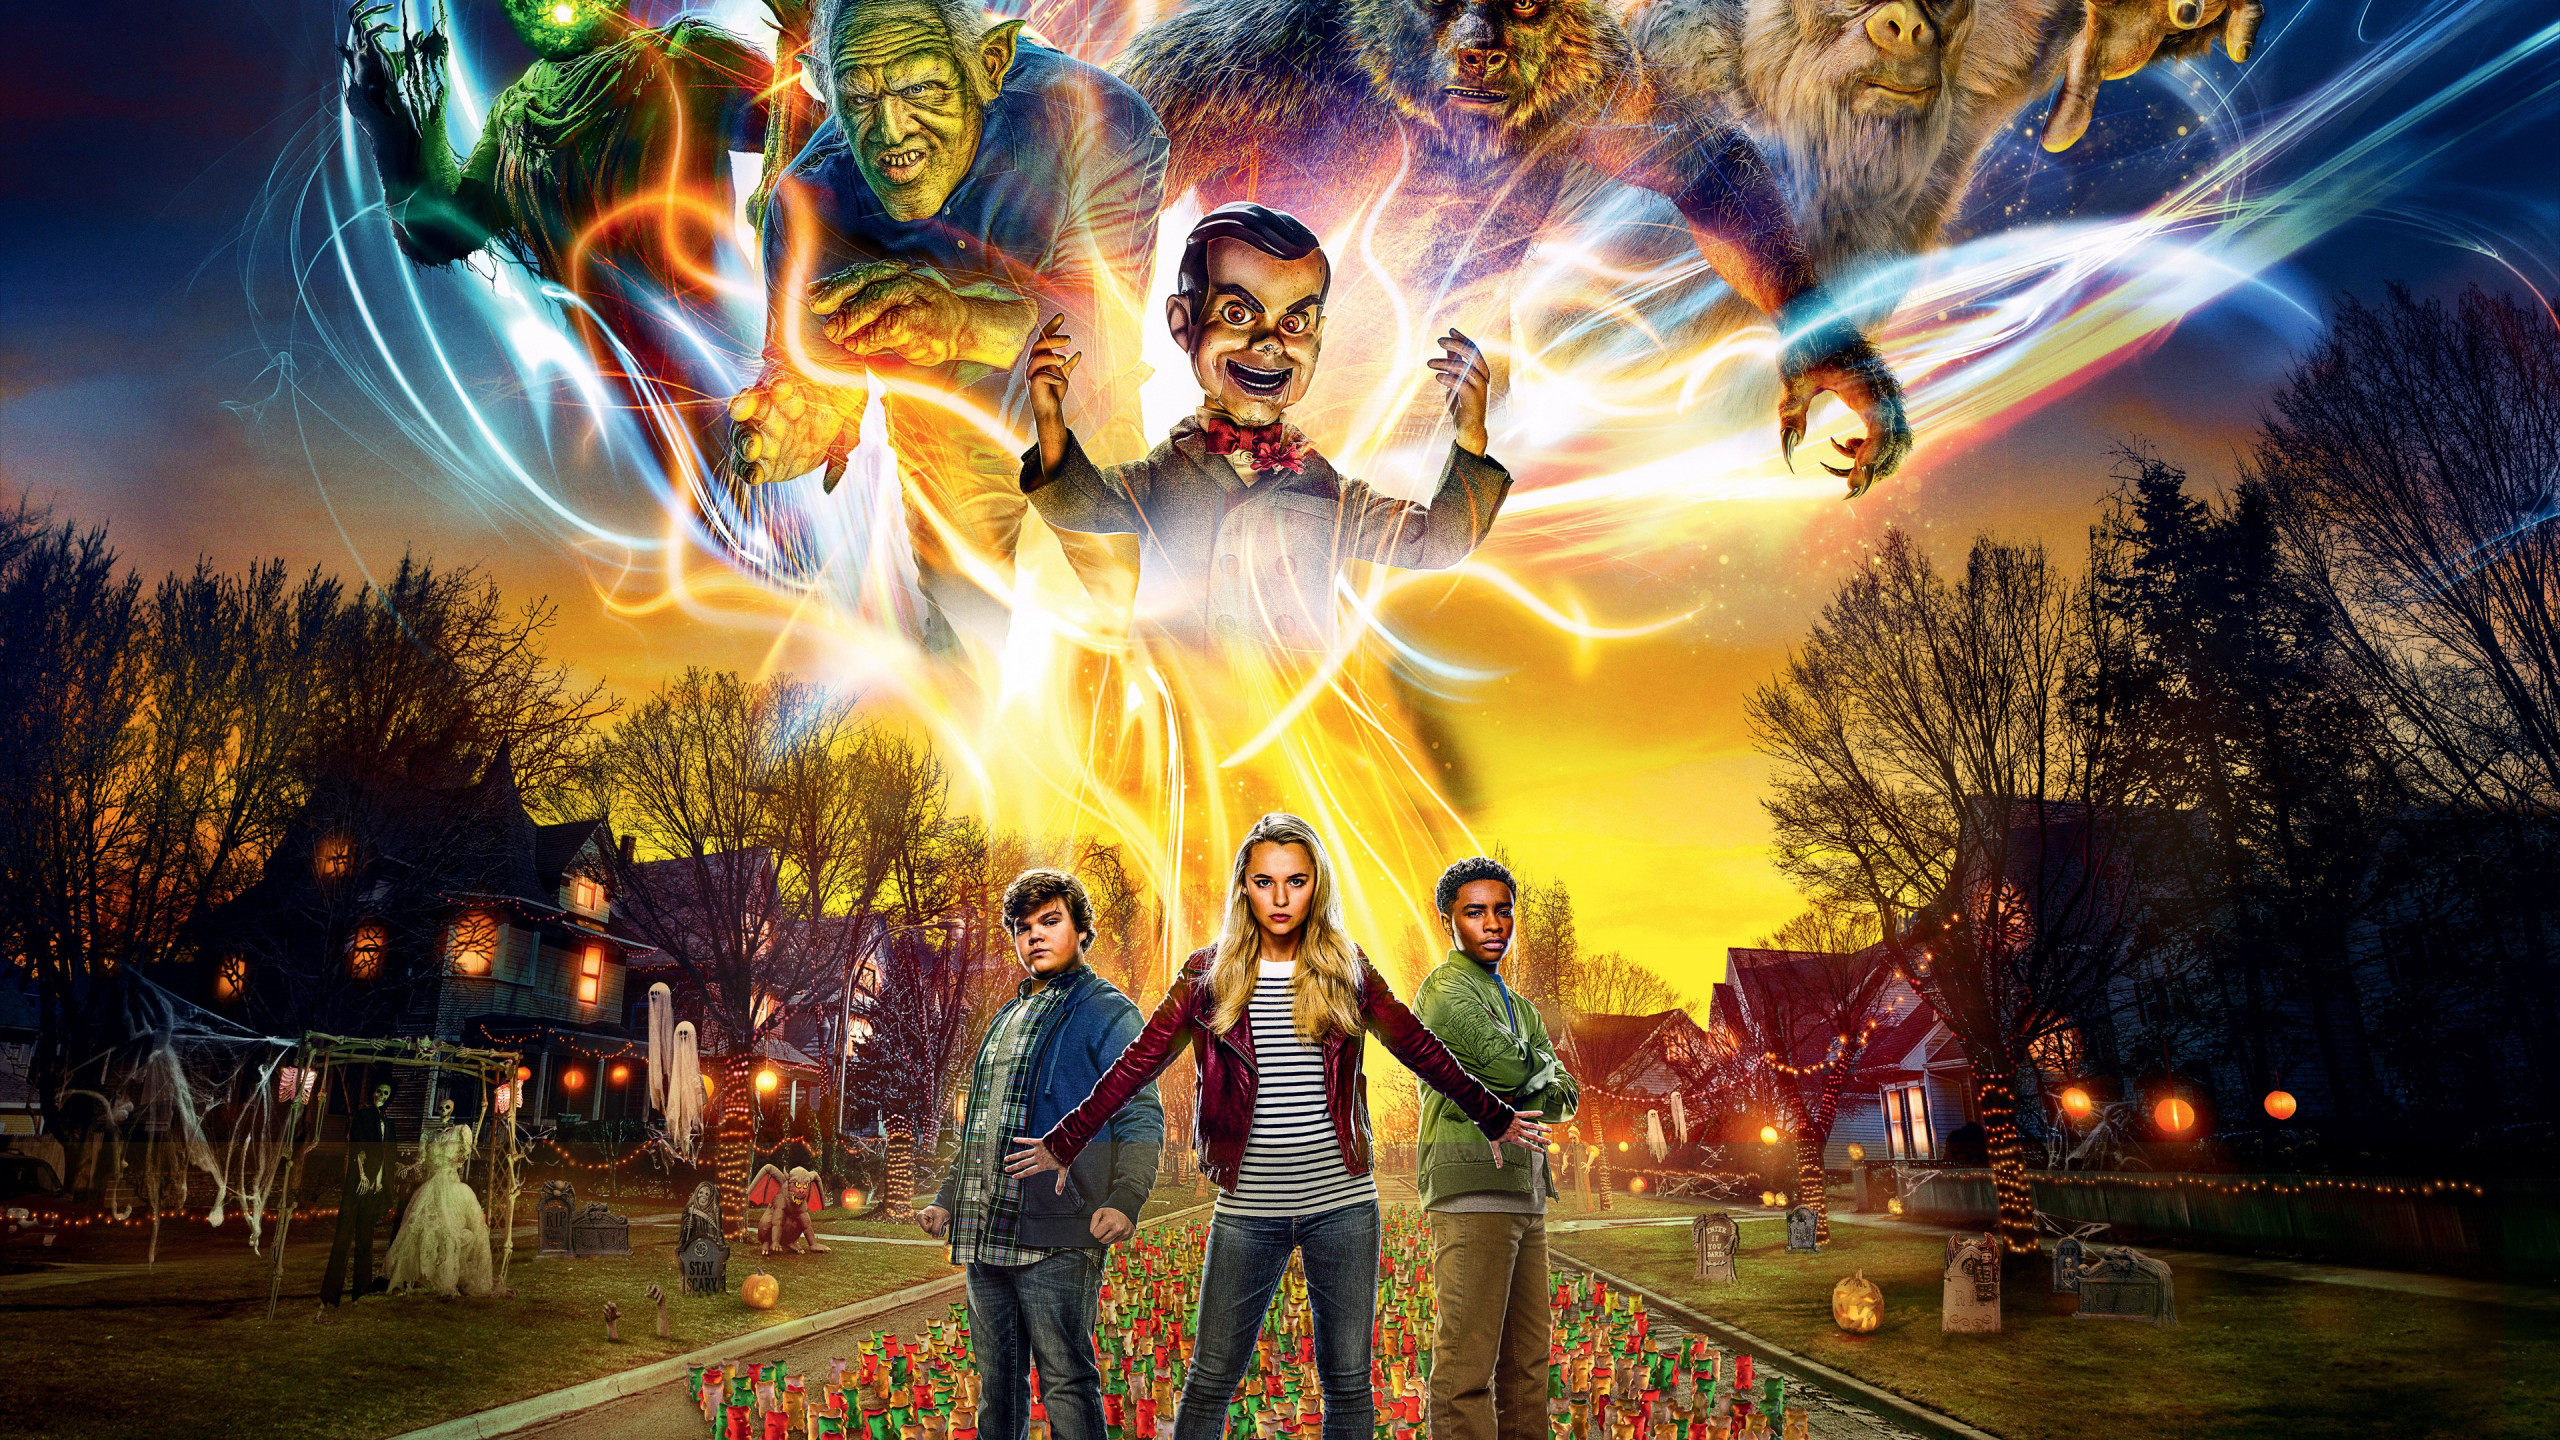 Goosebumps 2: Haunted Halloween wallpaper 2560x1440